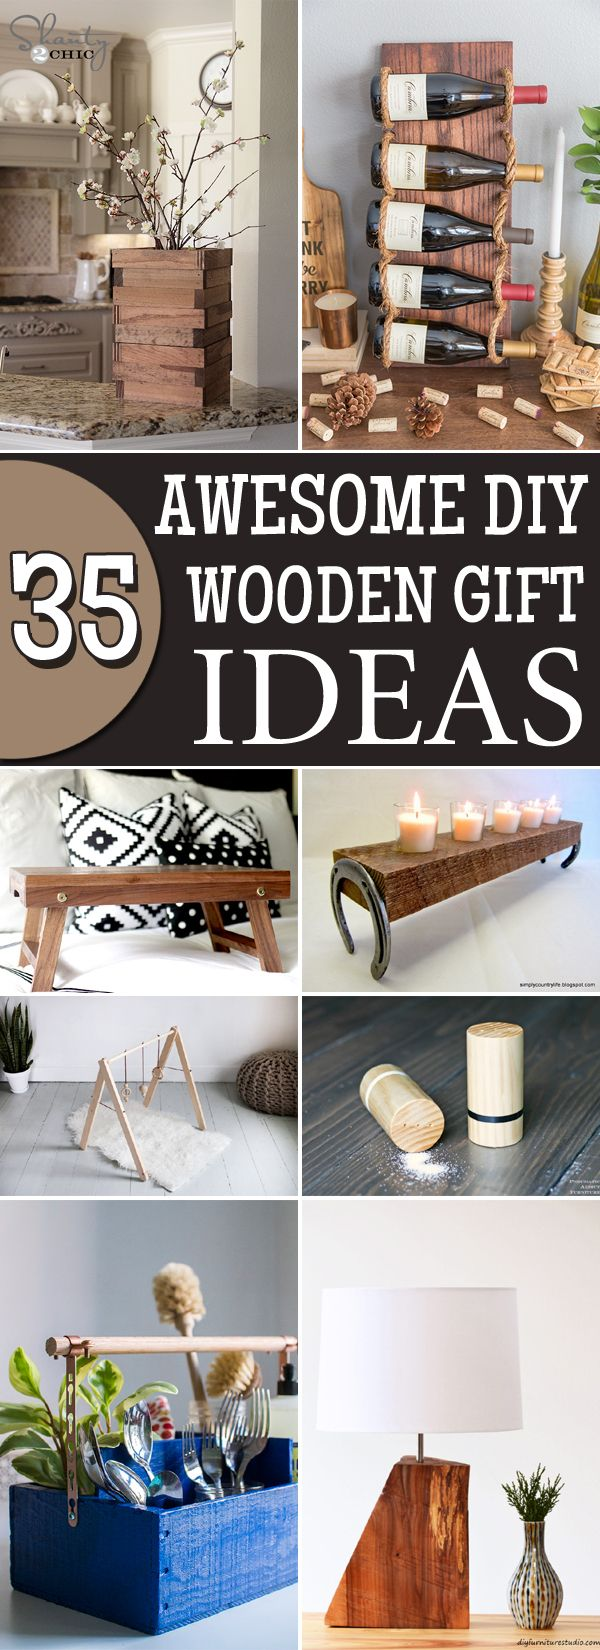 35 Awesome Diy Wooden Gift Ideas That Everyone Will Love Best Diy